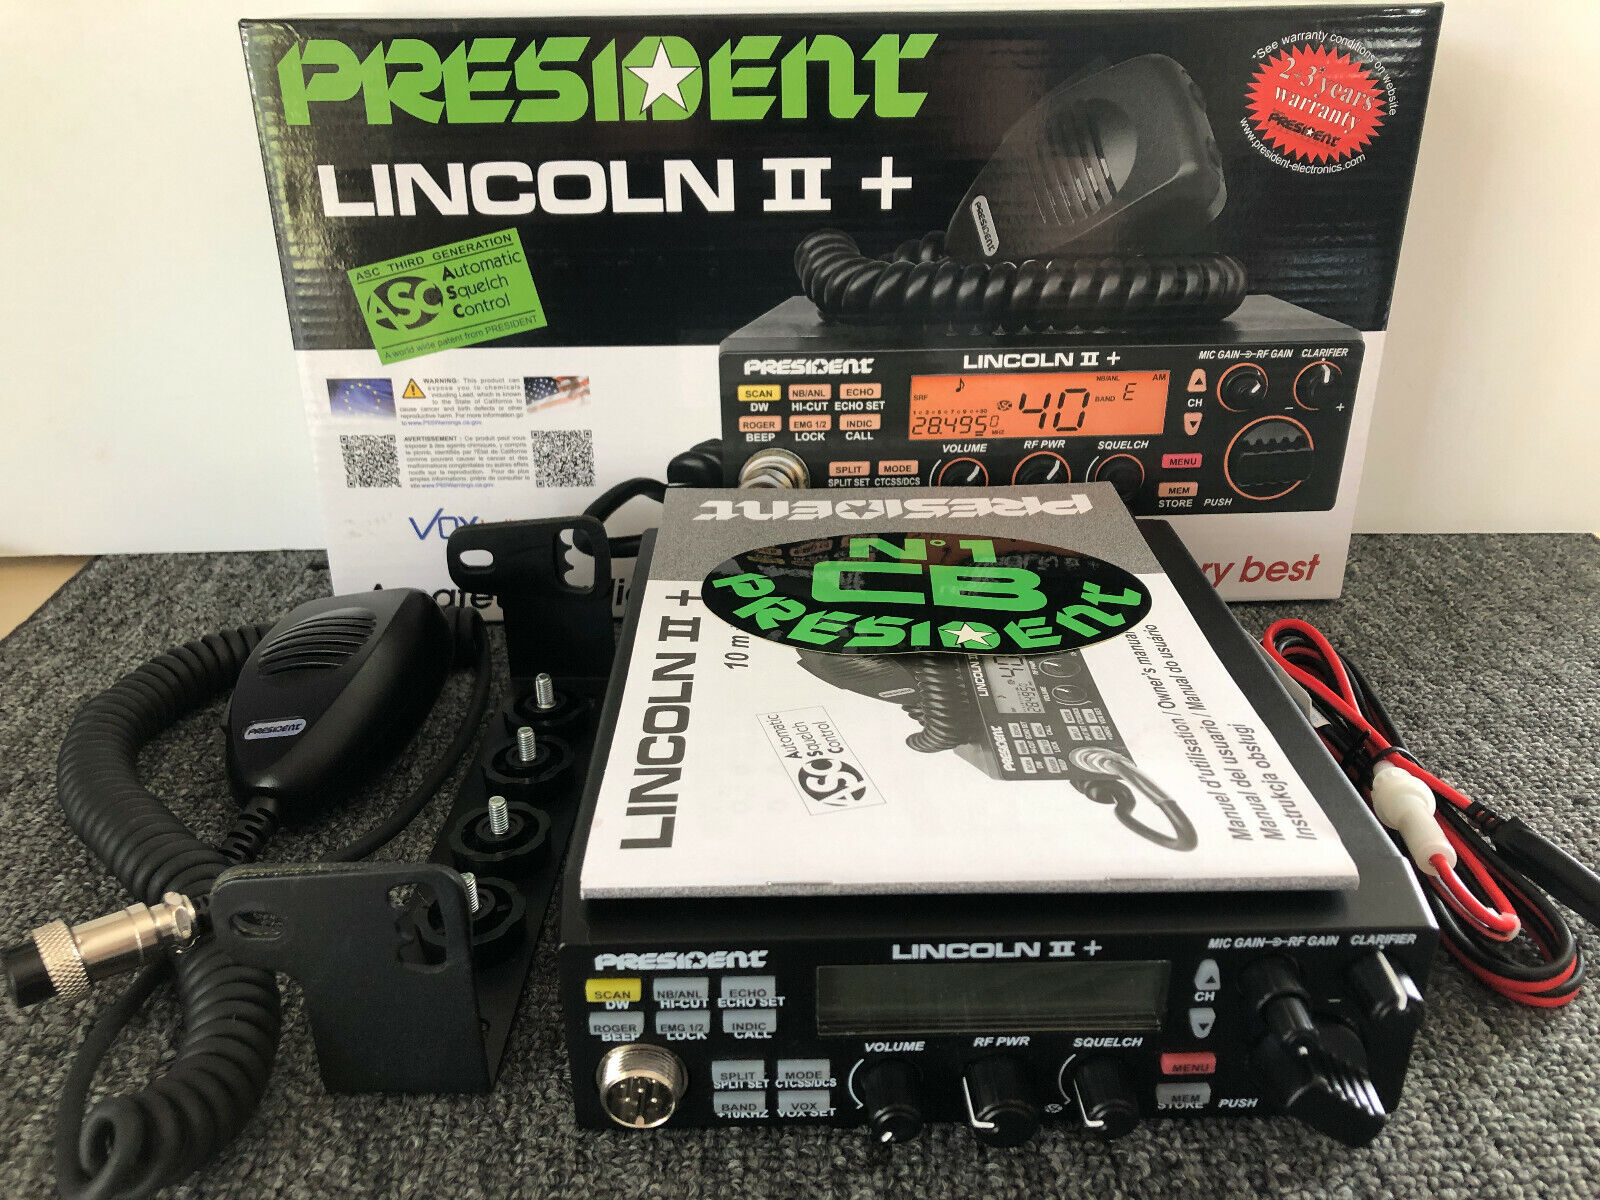 President Lincoln II+ V3 10-11-12 Meter Amateur Radio AM/FM/SSB/CW, TUNED, MINT!. Available Now for 235.00